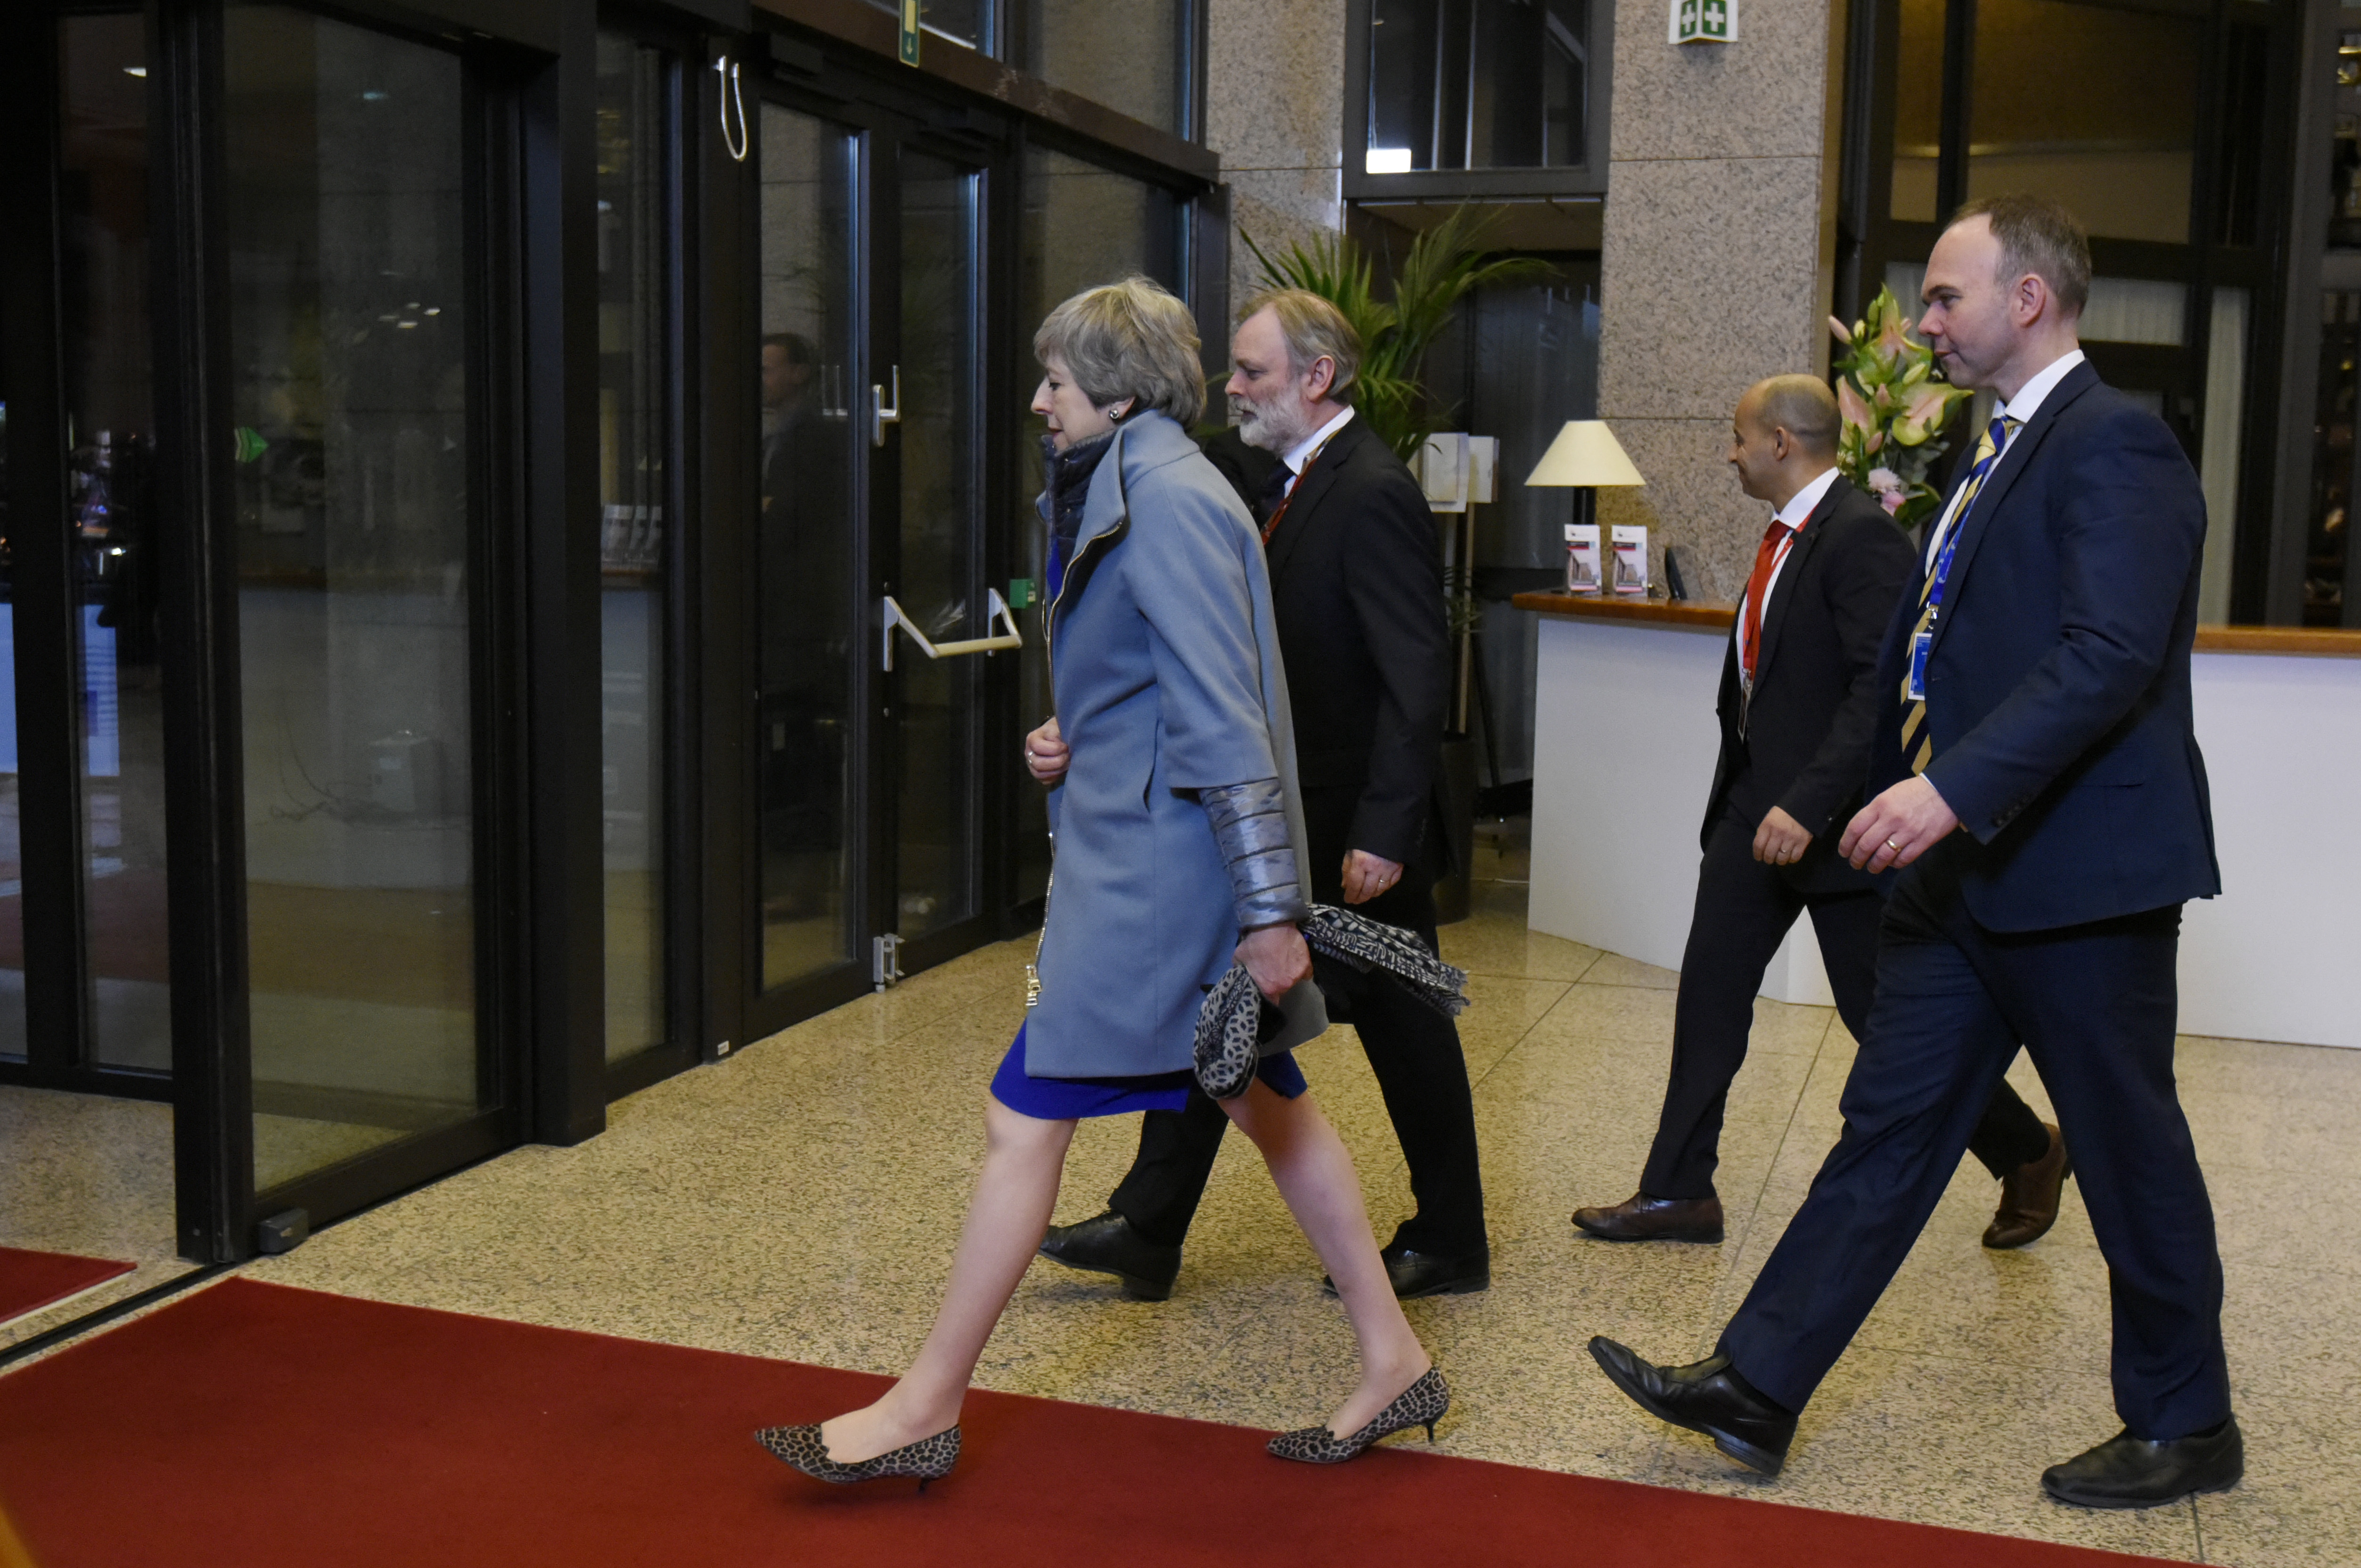 British Prime Minister Theresa May leaves at the conclusion of an EU summit in Brussels on April 11.